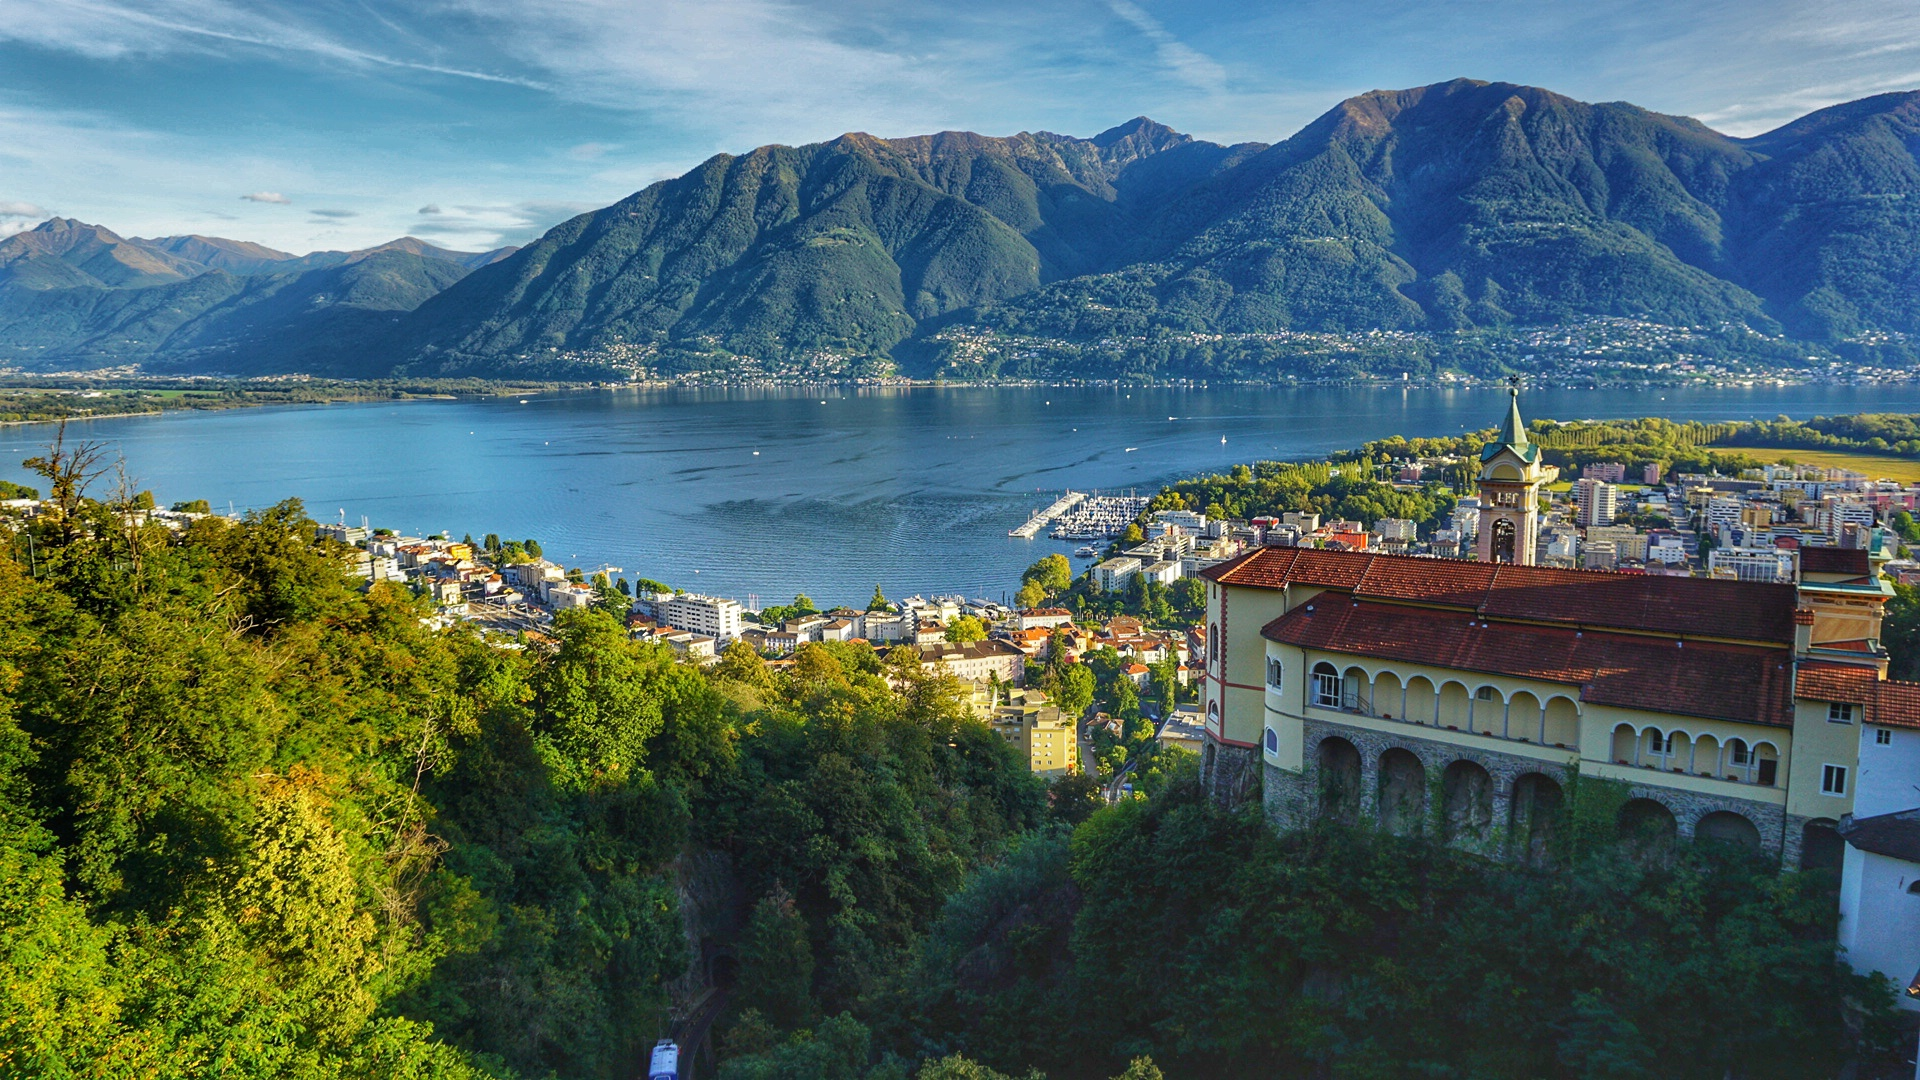 Top-Rated Attractions in the Italian part of Switzerland